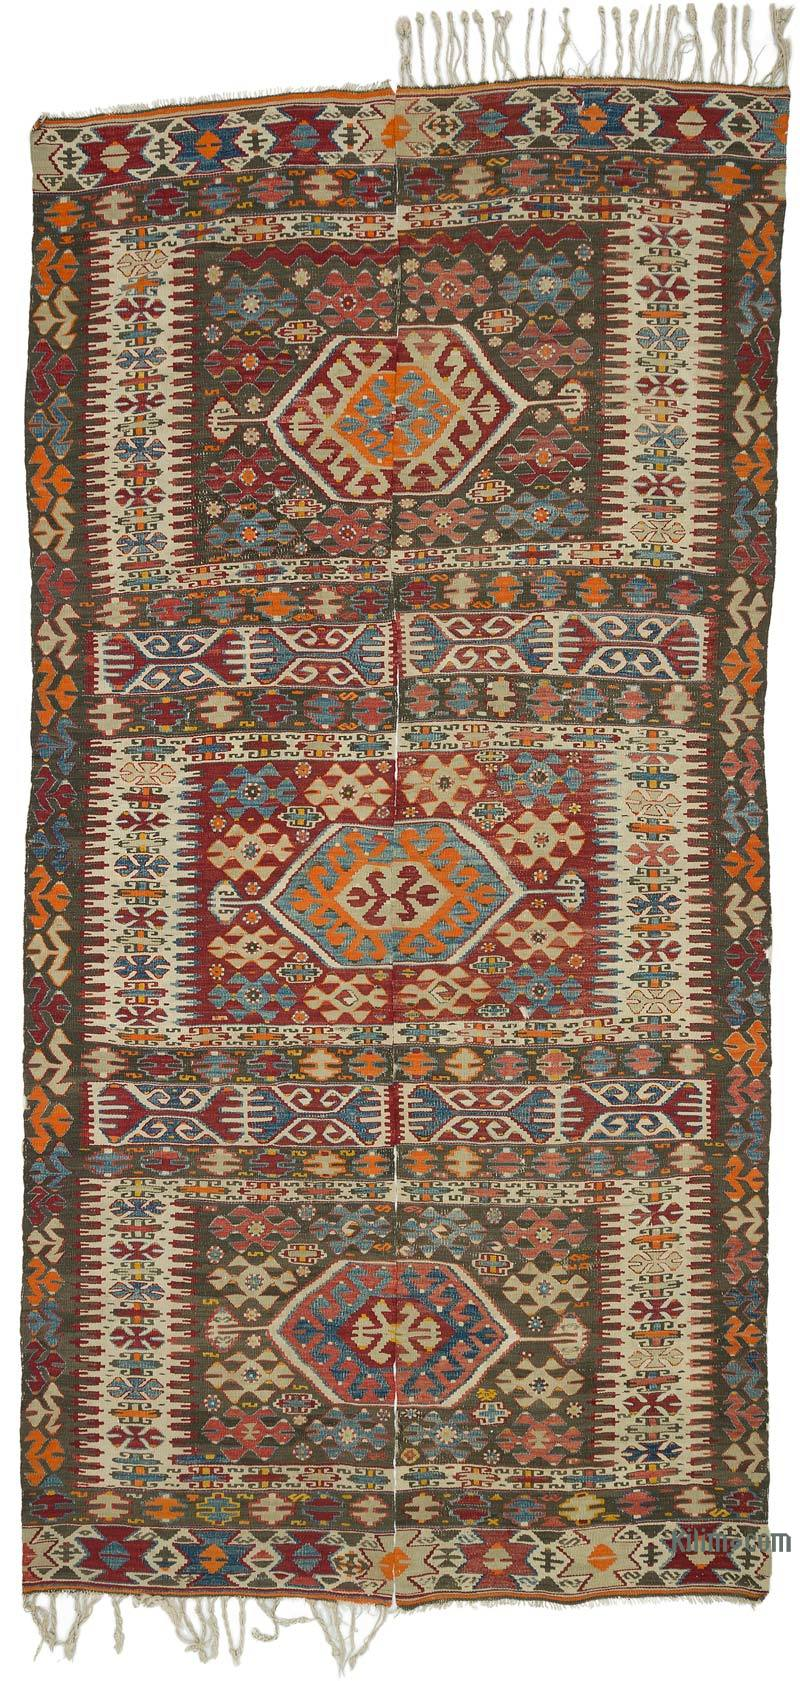 k0020928 multicolor antique aydin kilim rug. Black Bedroom Furniture Sets. Home Design Ideas